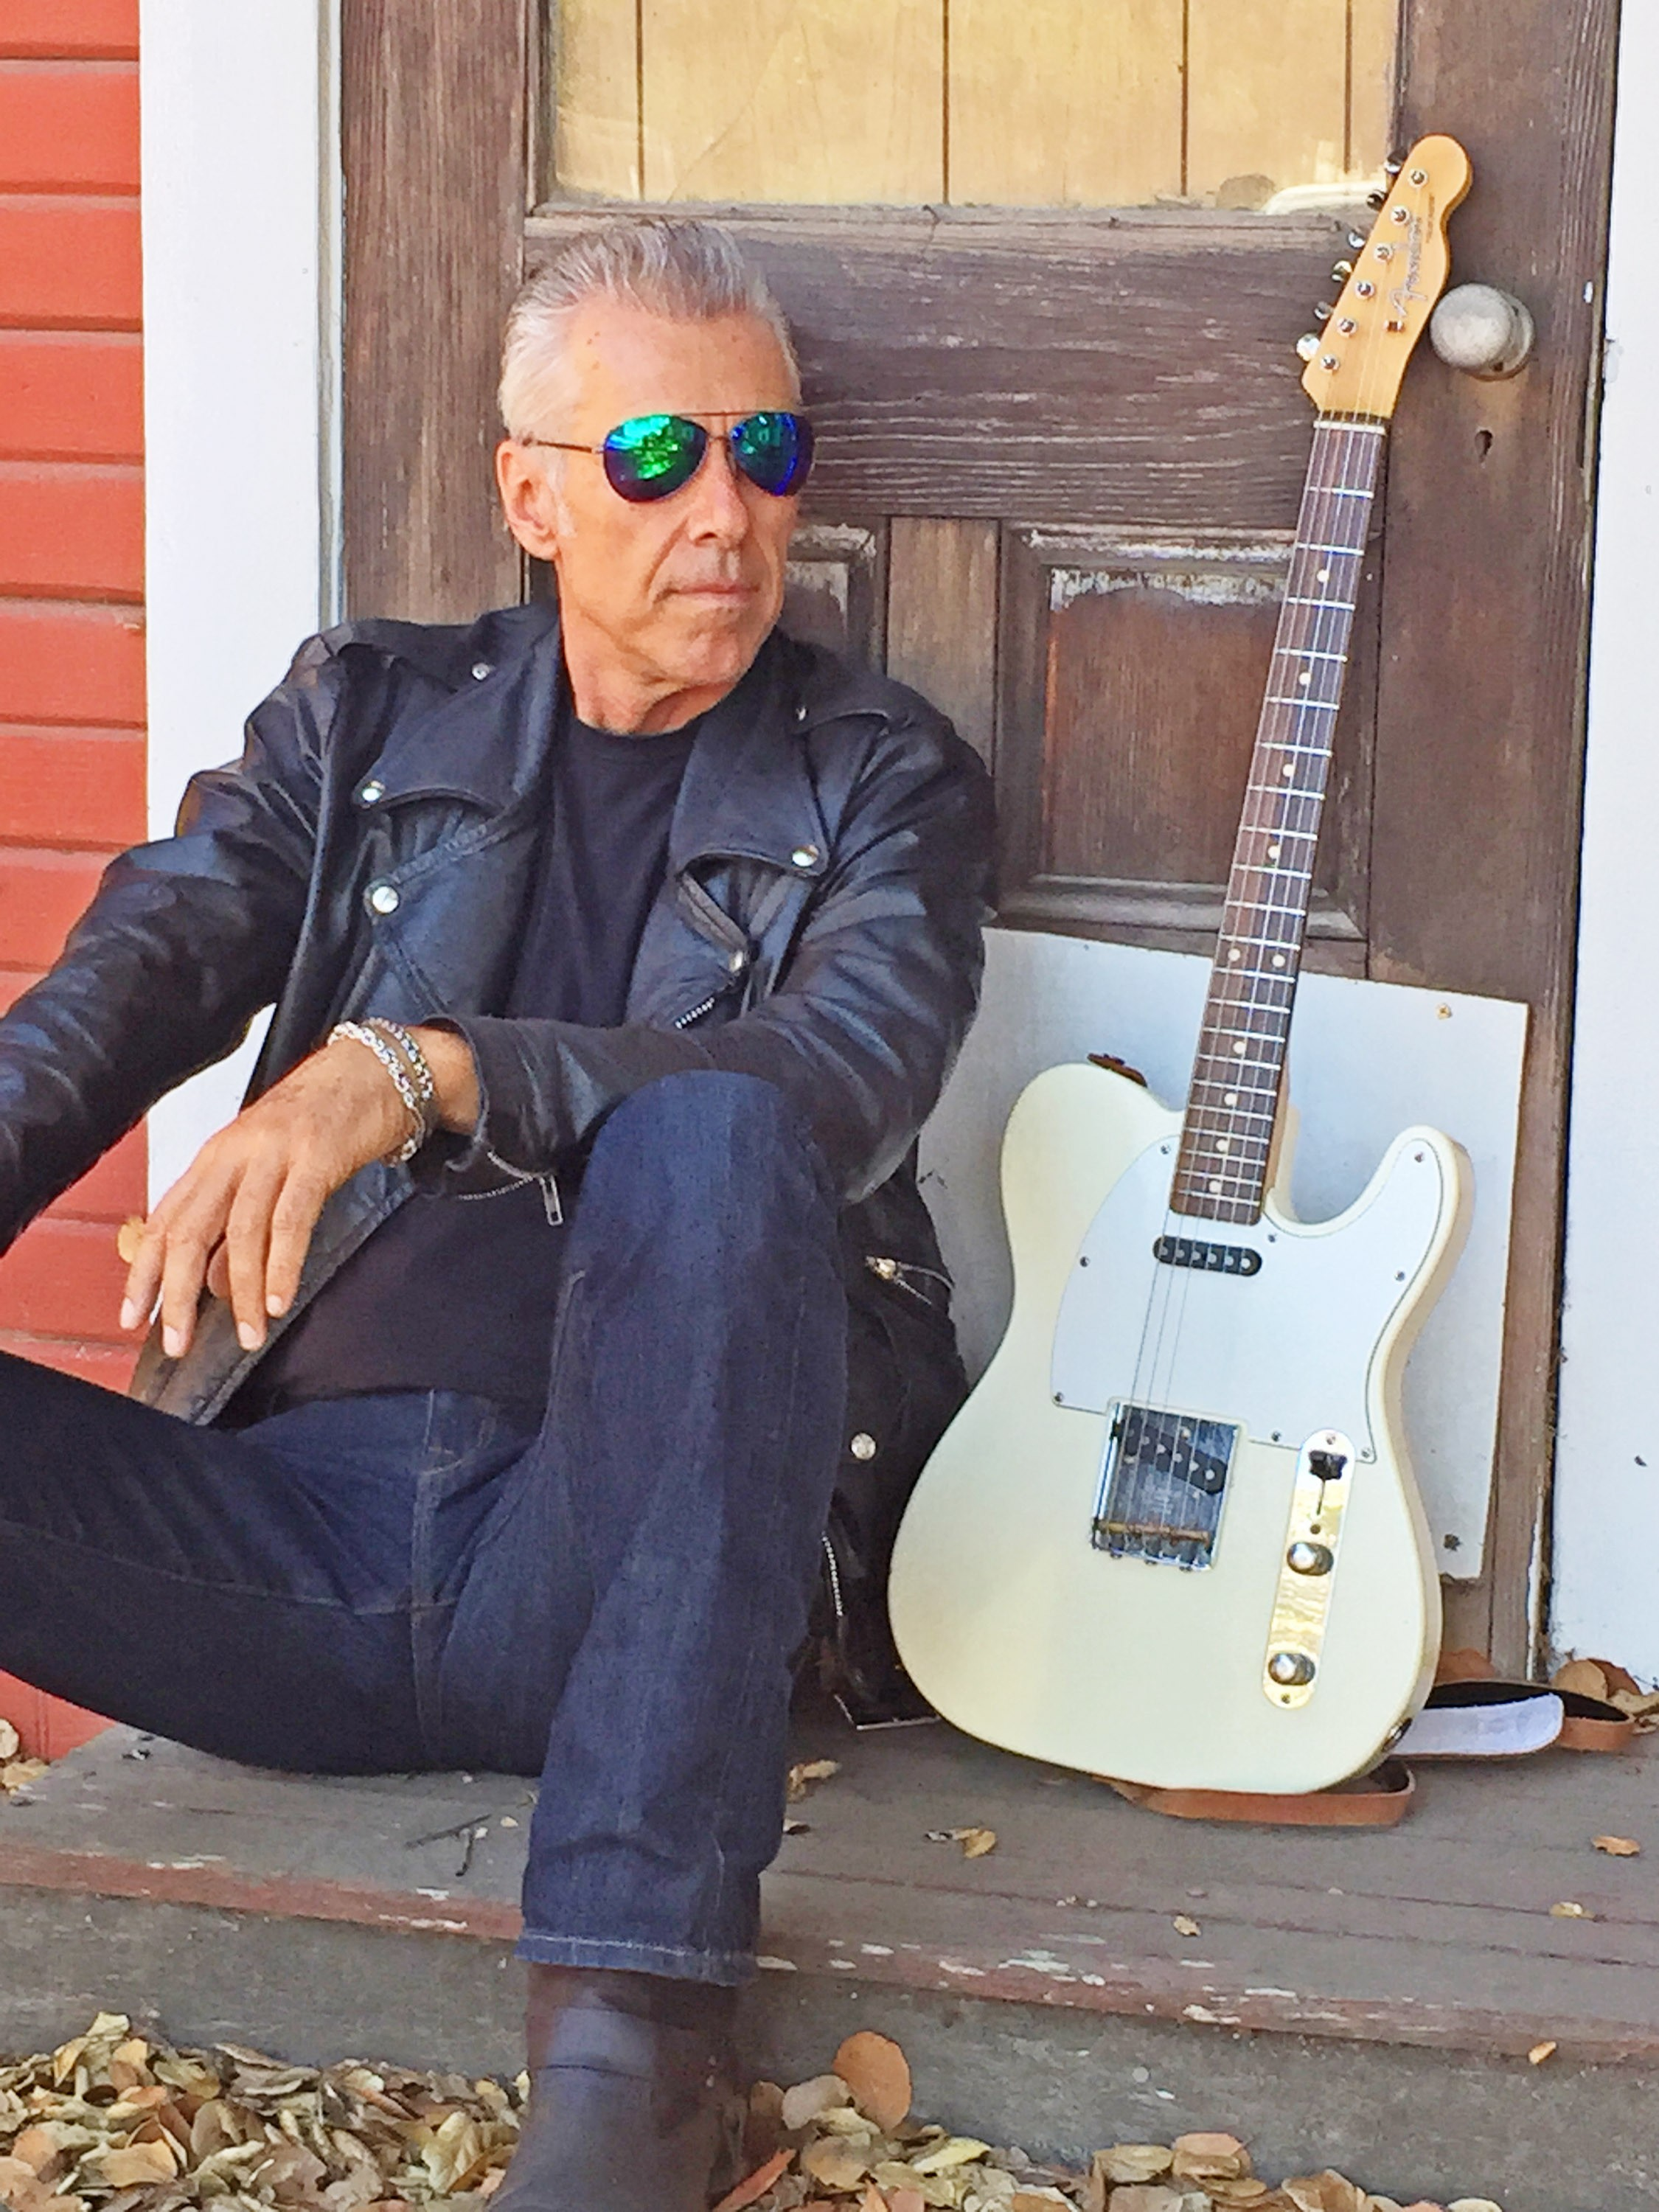 Tony Balbinot and the Cadillac Angels release Hillbilly Girls on Dec